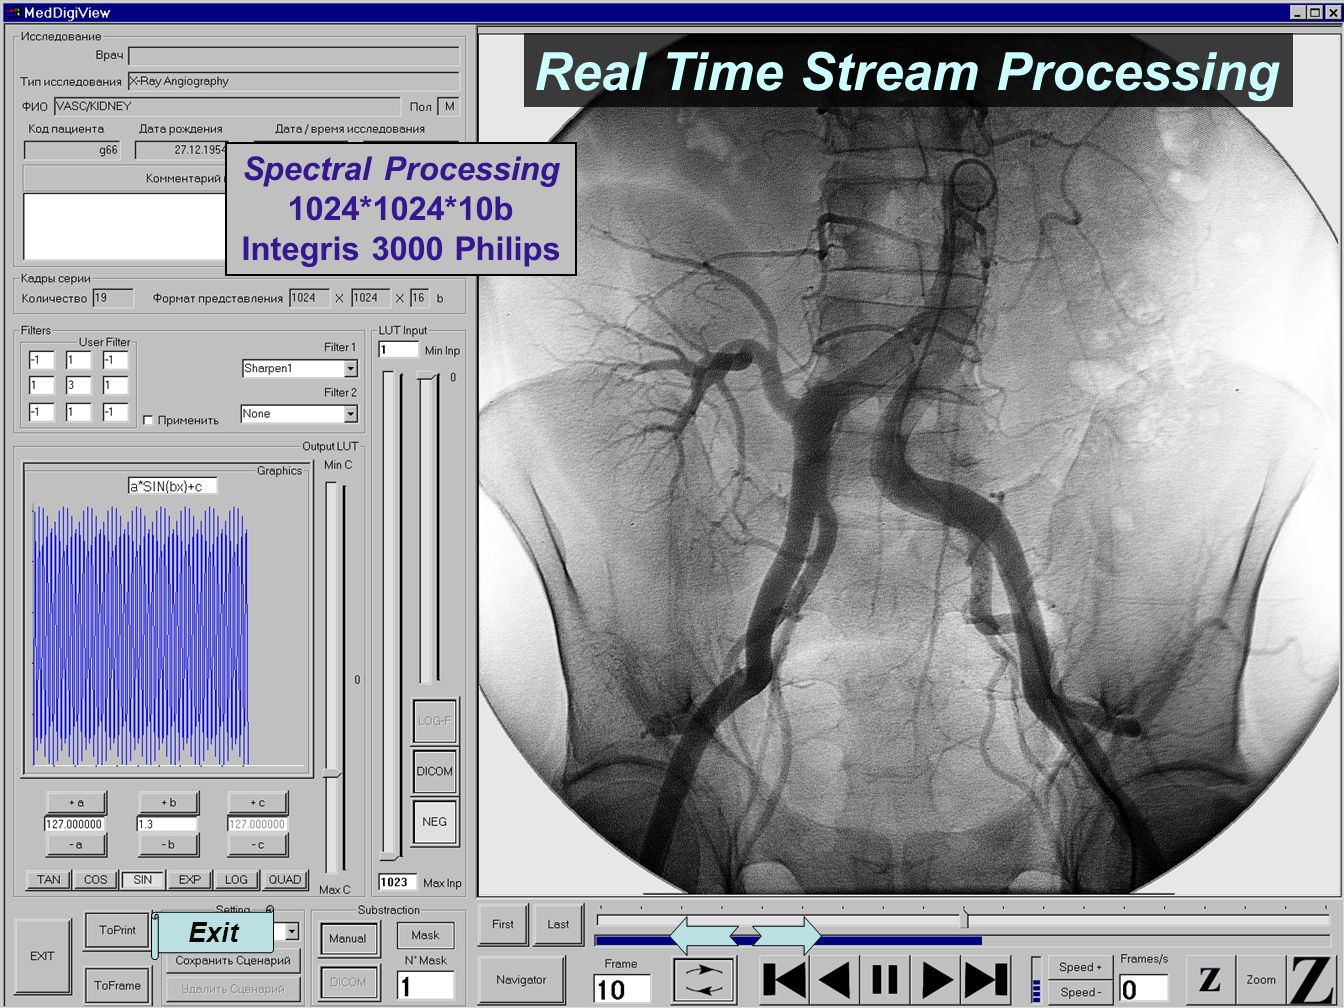 Exit Spectral Processing 1024*1024*10b Integris 3000 Philips Real Time Stream Processing